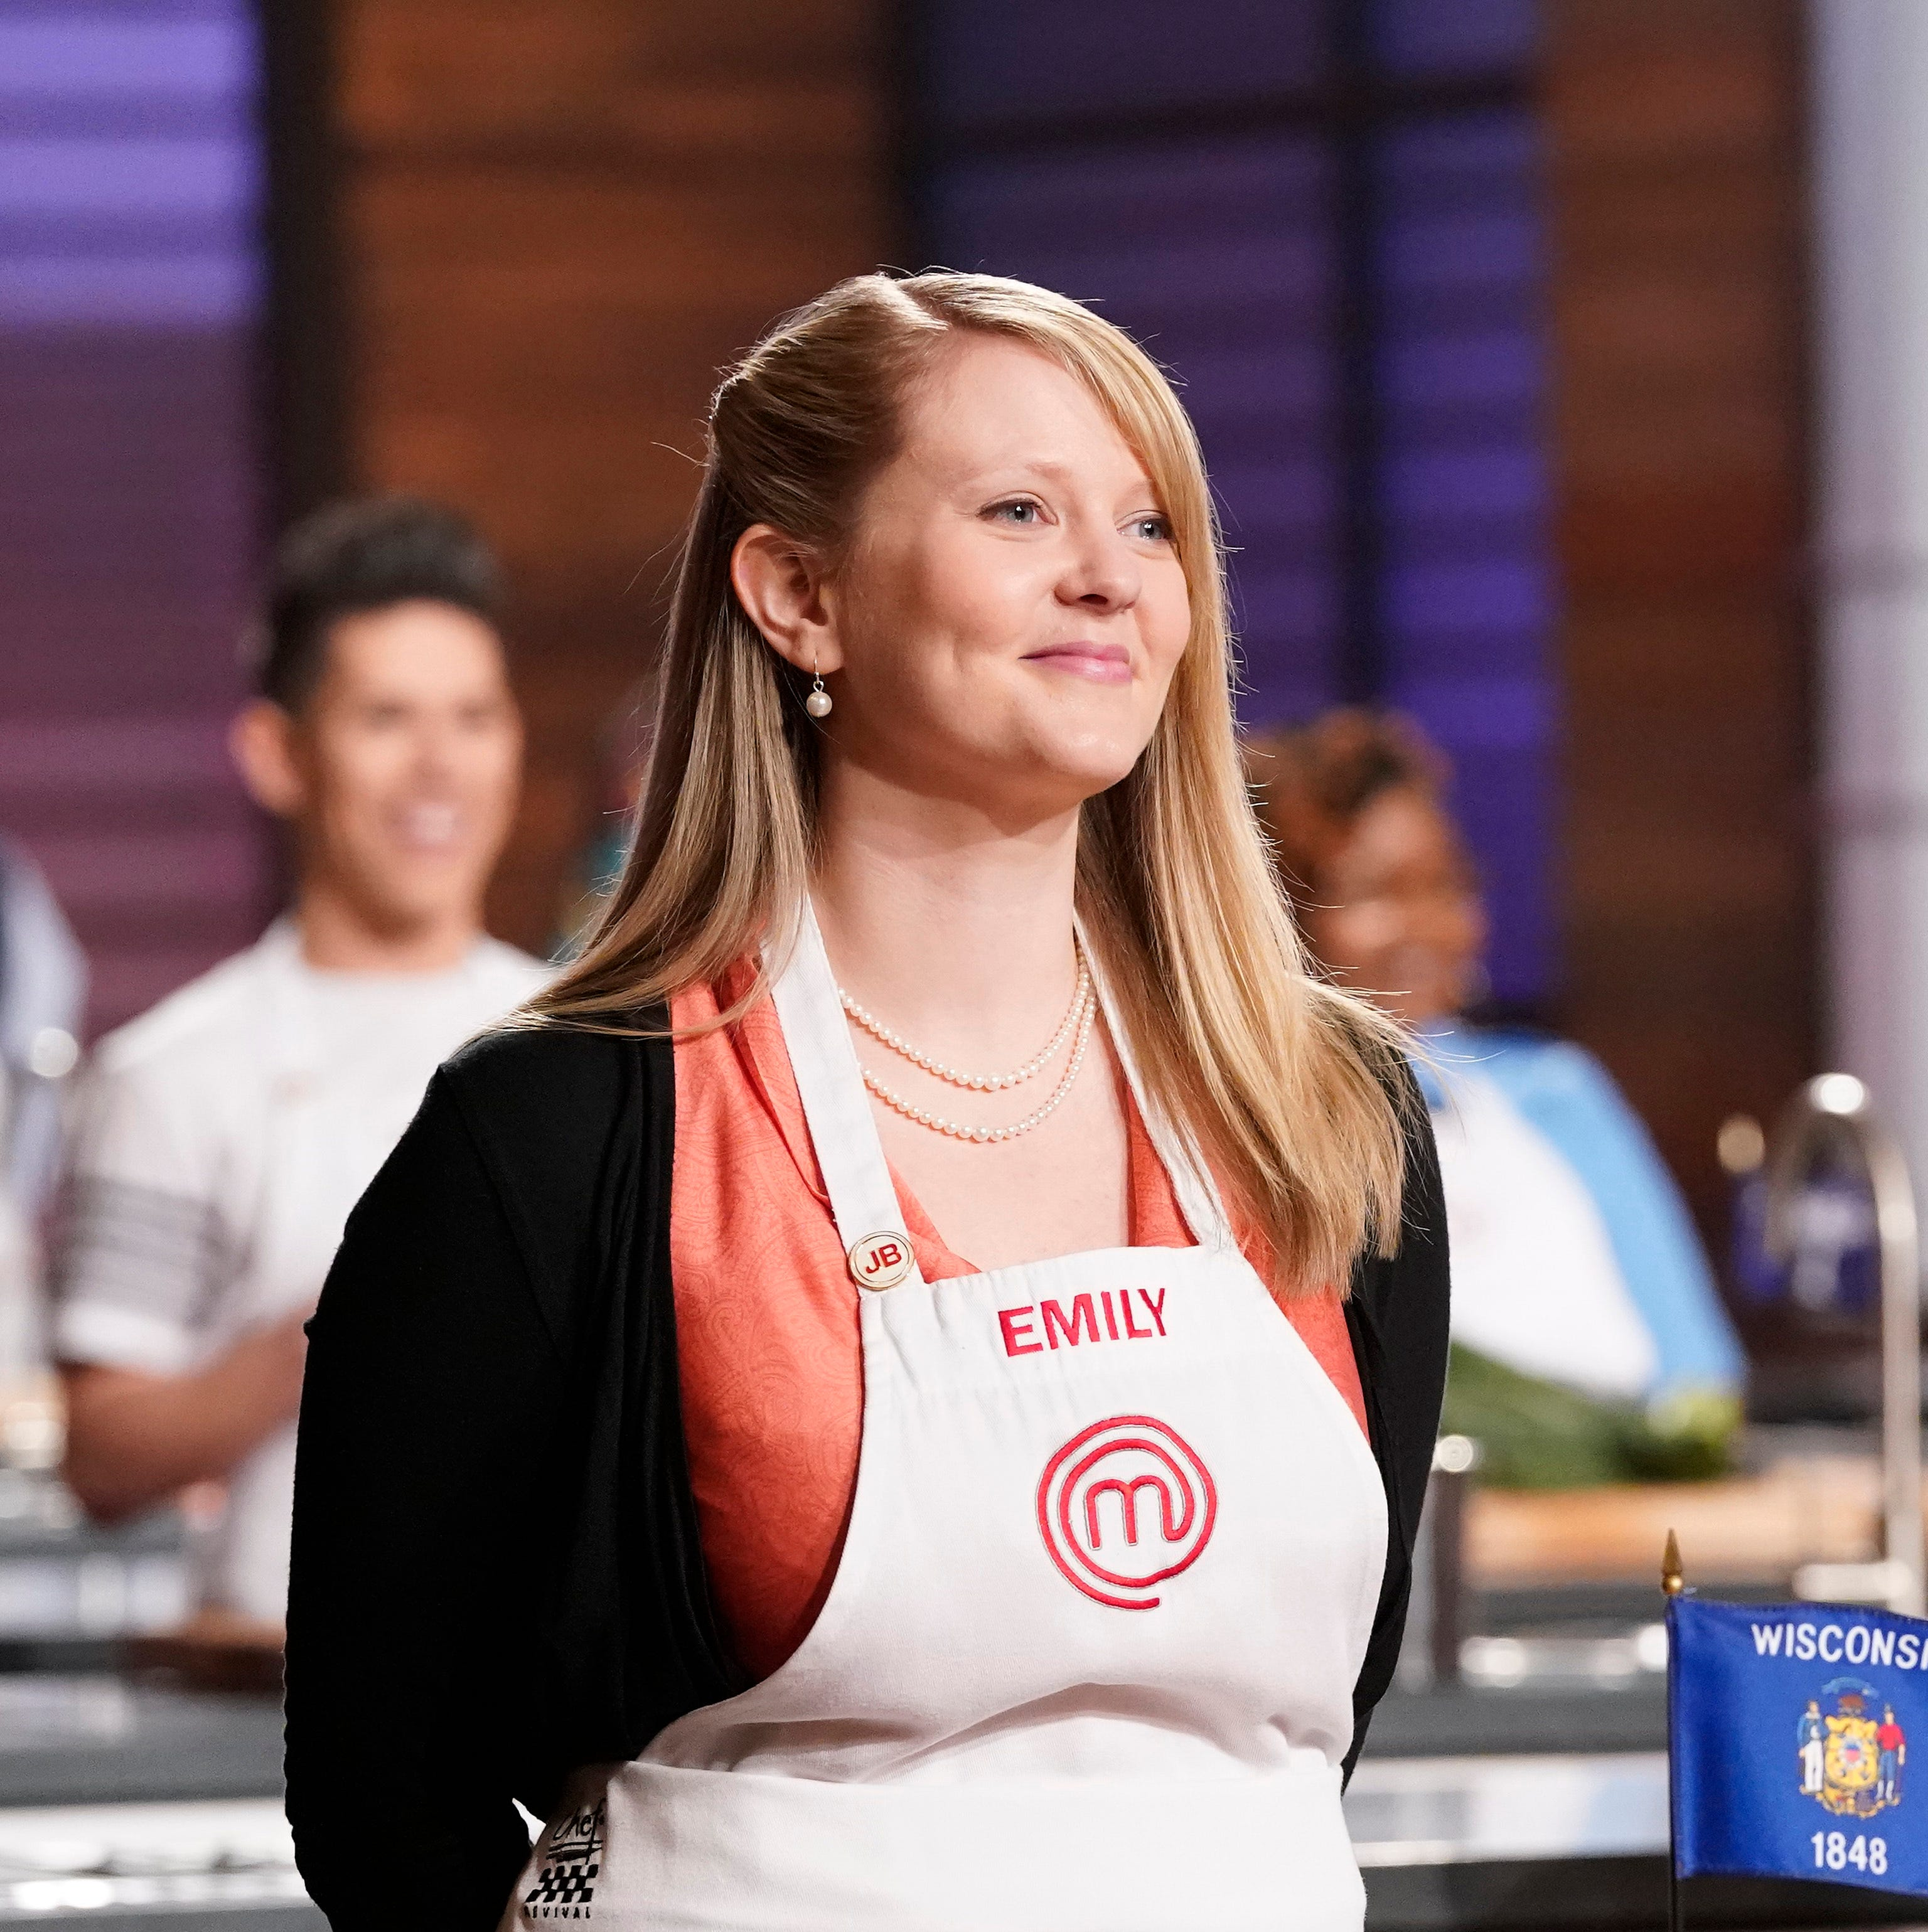 Wisconsin native Emily Hallock gets knocked out of 'MasterChef'